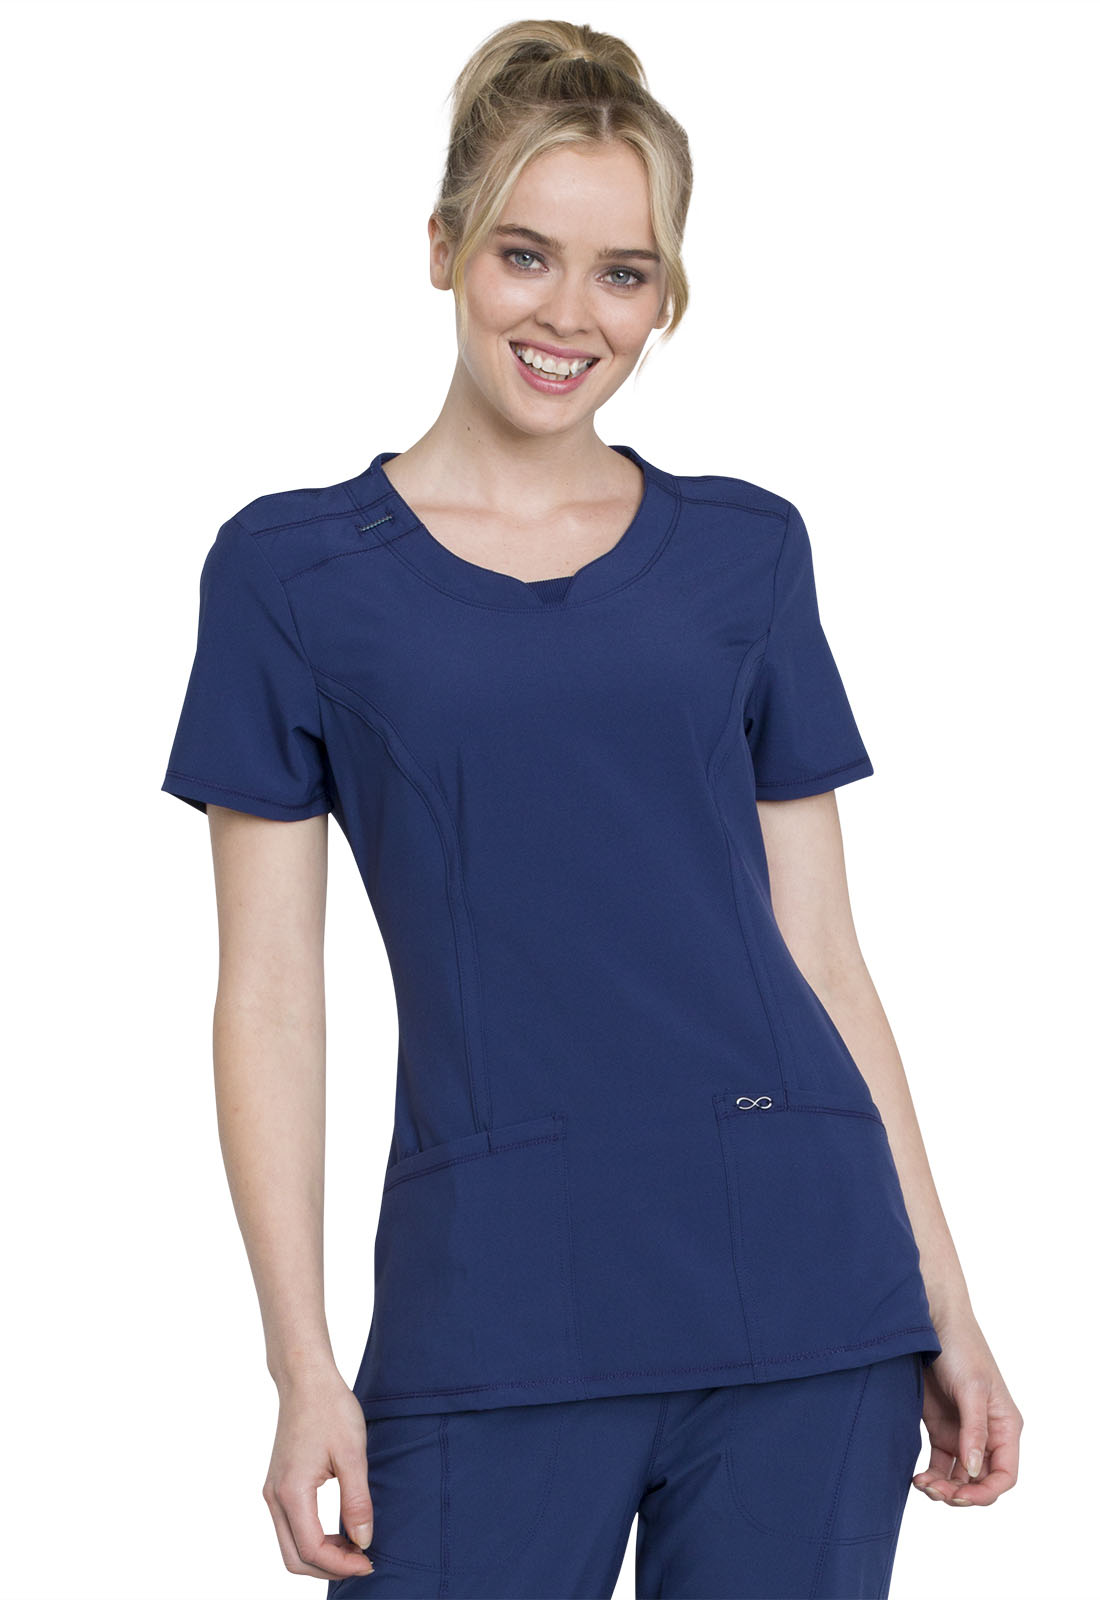 7c58f2ed9d4 Infinity Round Neck Top in Navy 2624A-NYPS from Castle Uniforms